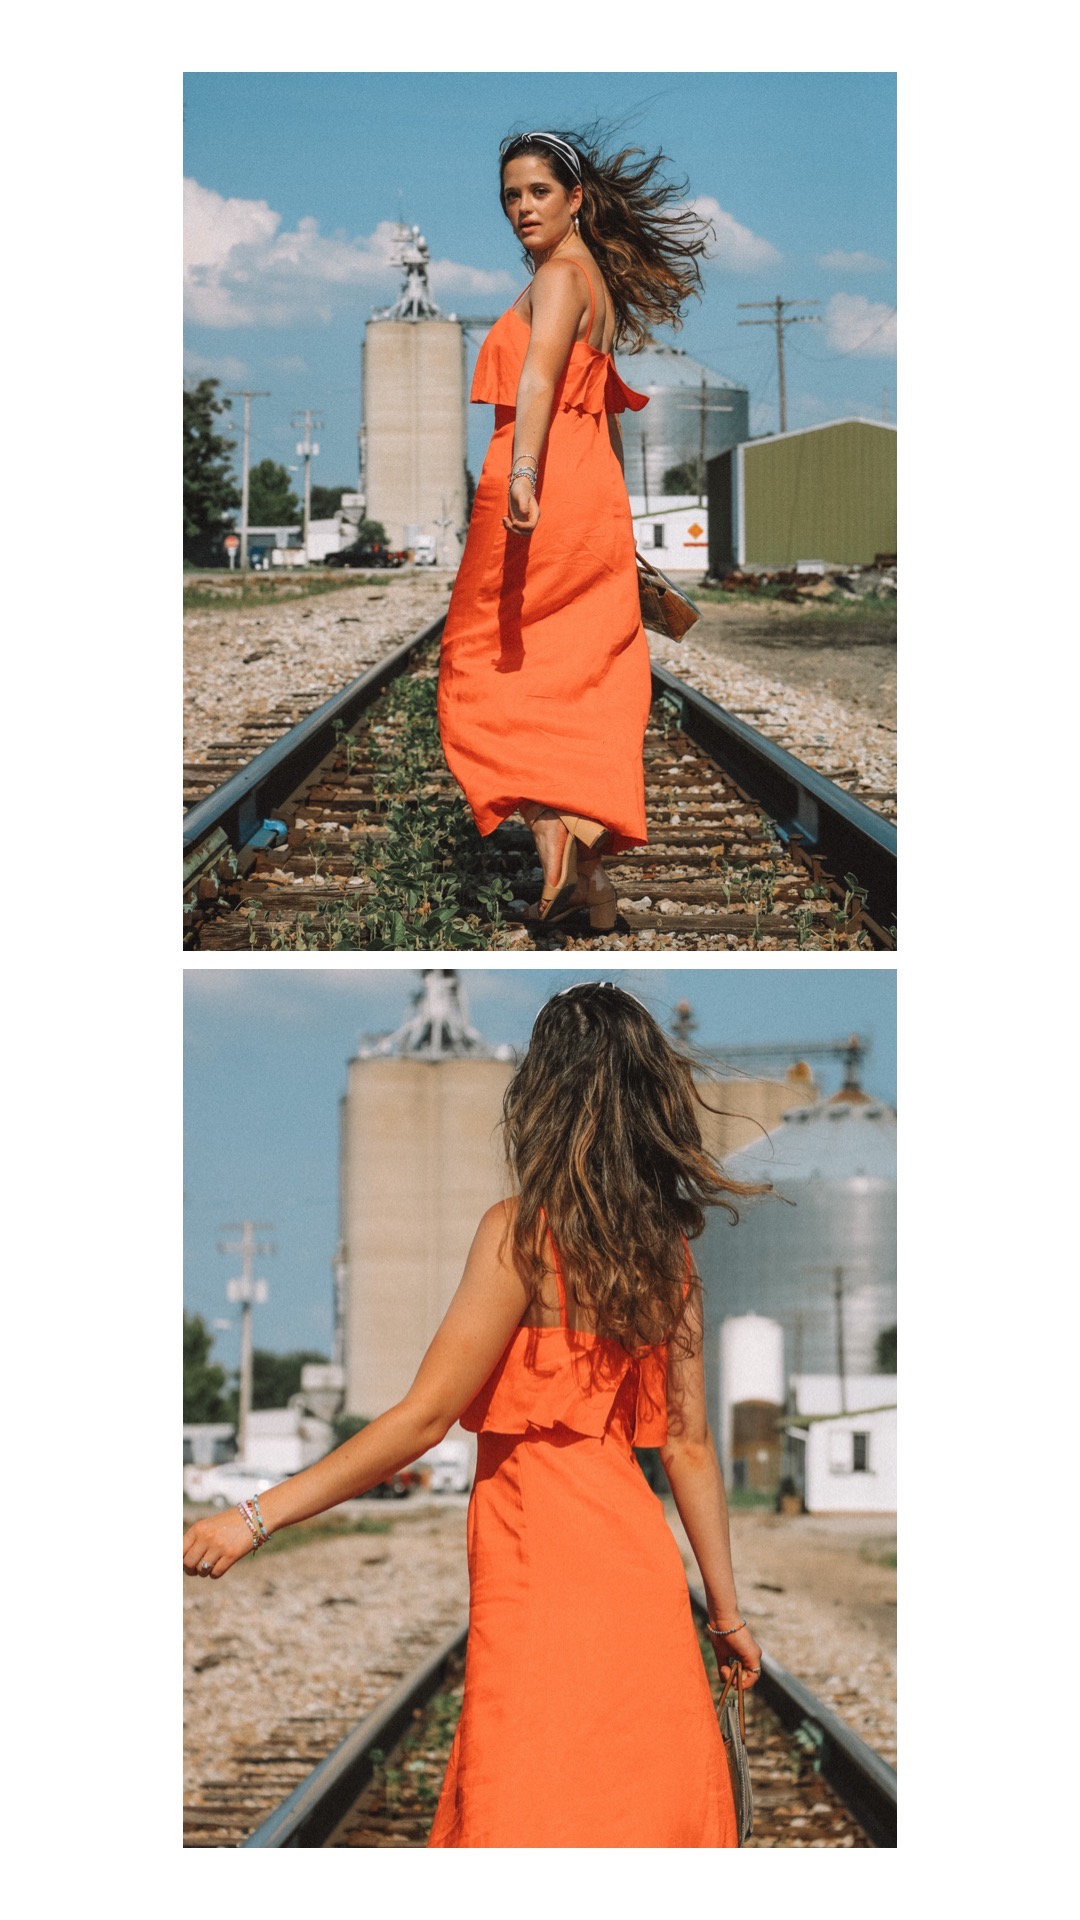 Style blogger, Kathleen Harper's outdoor photo shoot idea on train tracks.